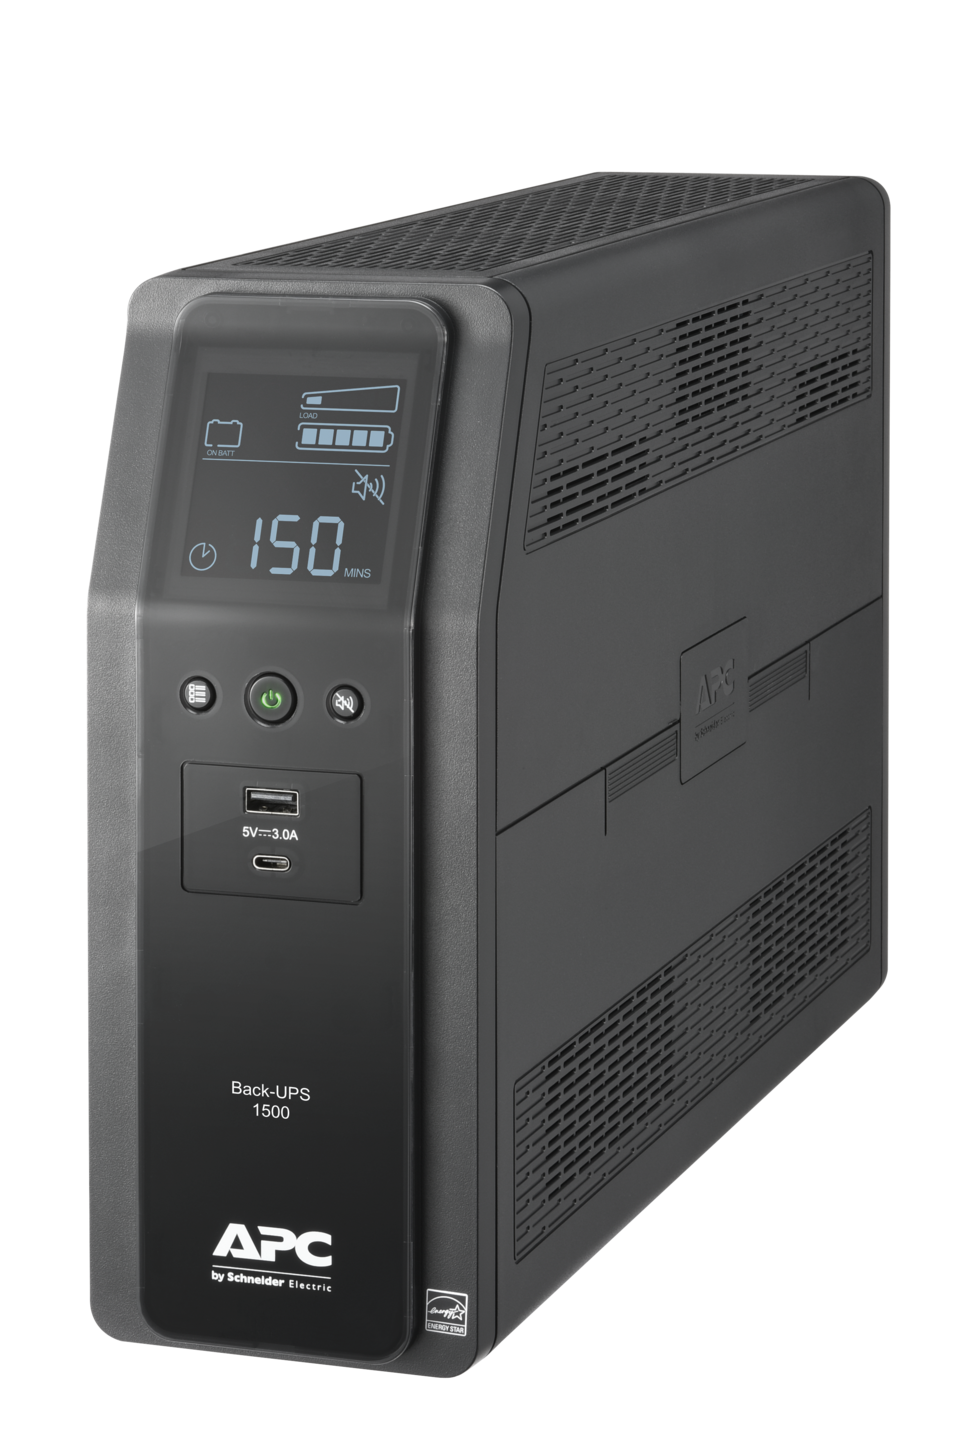 Premium battery backup and surge protection for